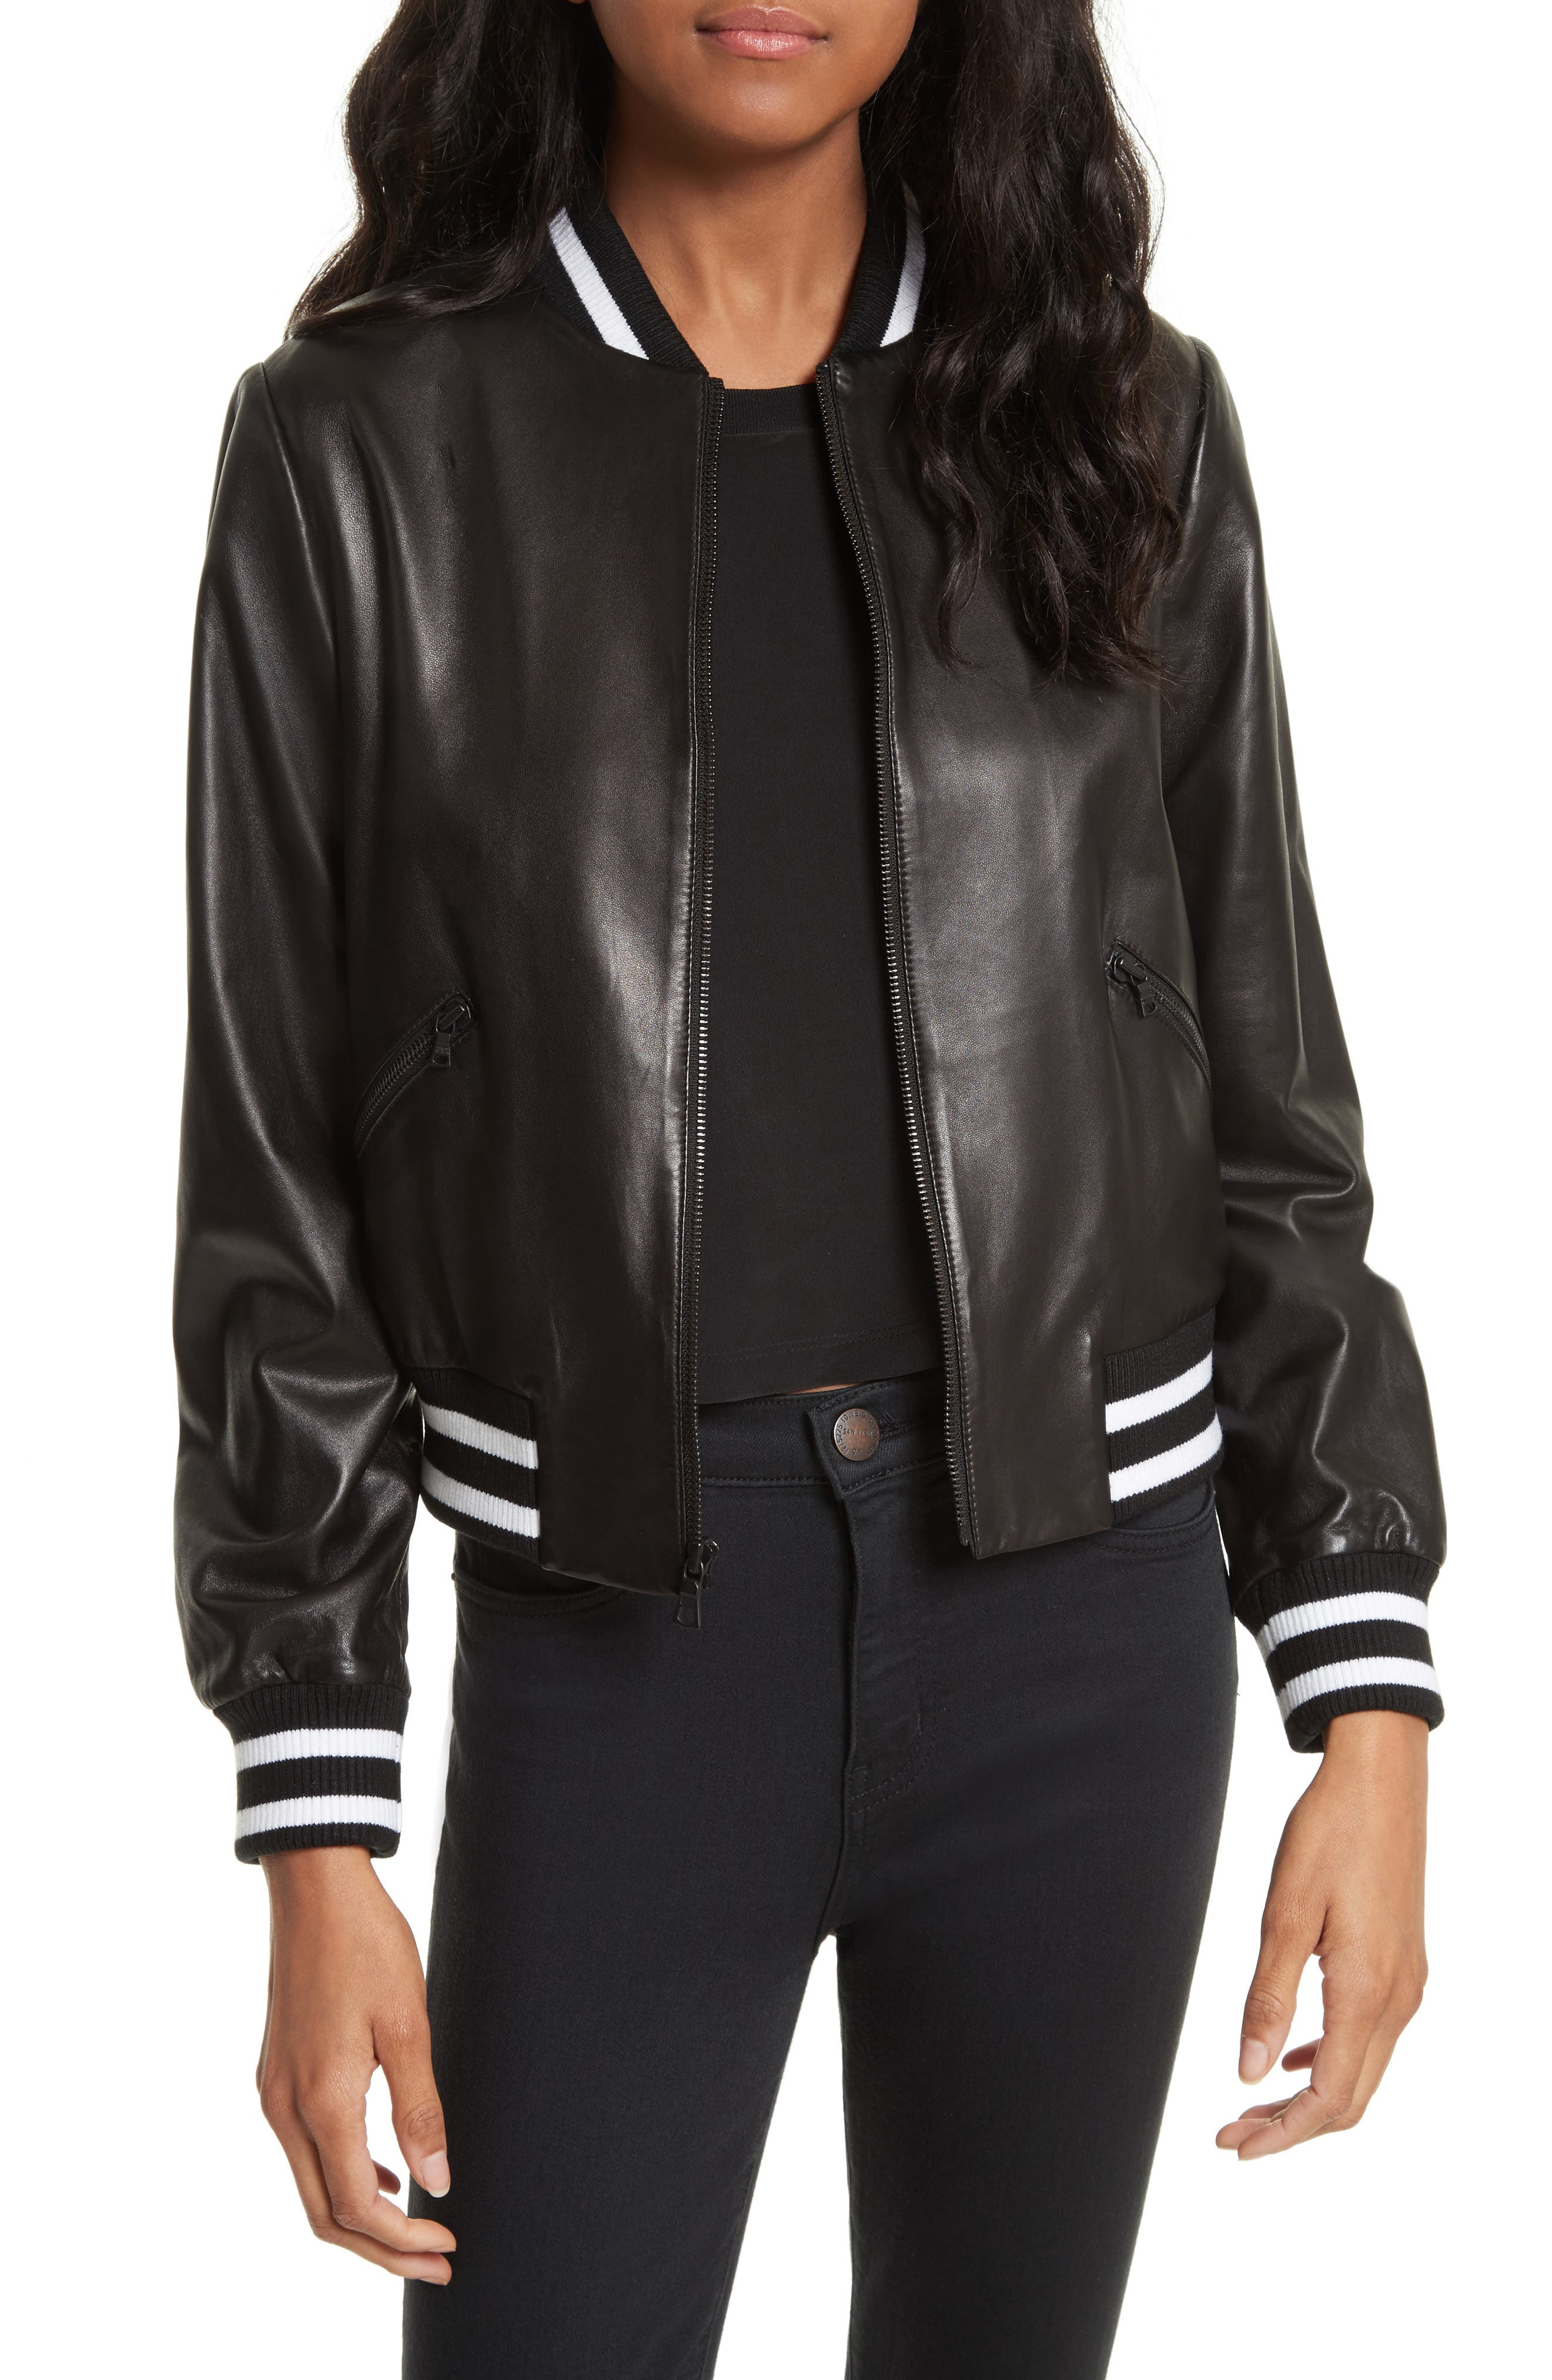 Demia Embellished Crop Leather Bomber Jacket,                             Main thumbnail 1, color,                             Black